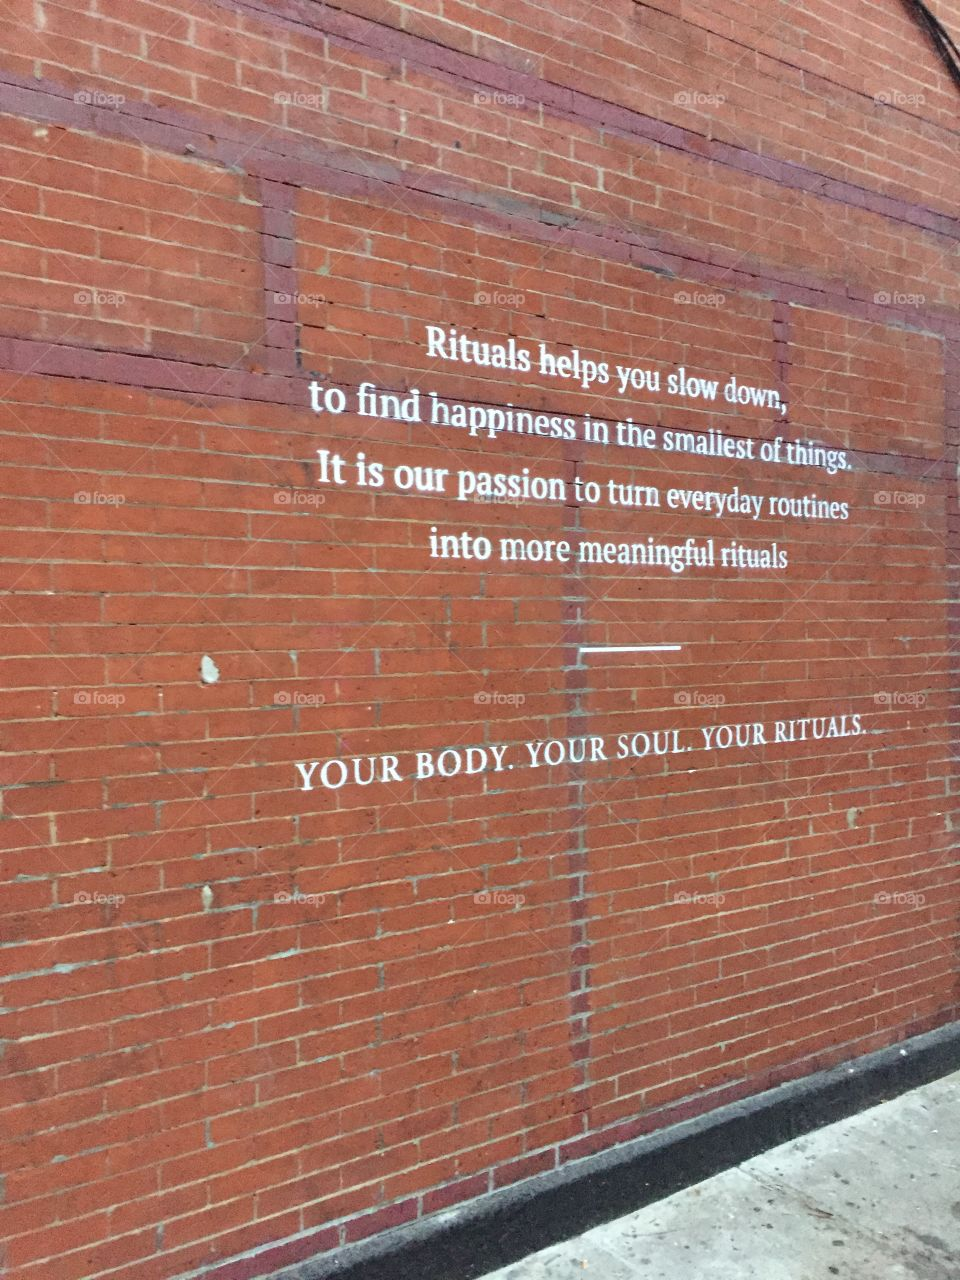 Quotes on the wall of Brooklyn inspire